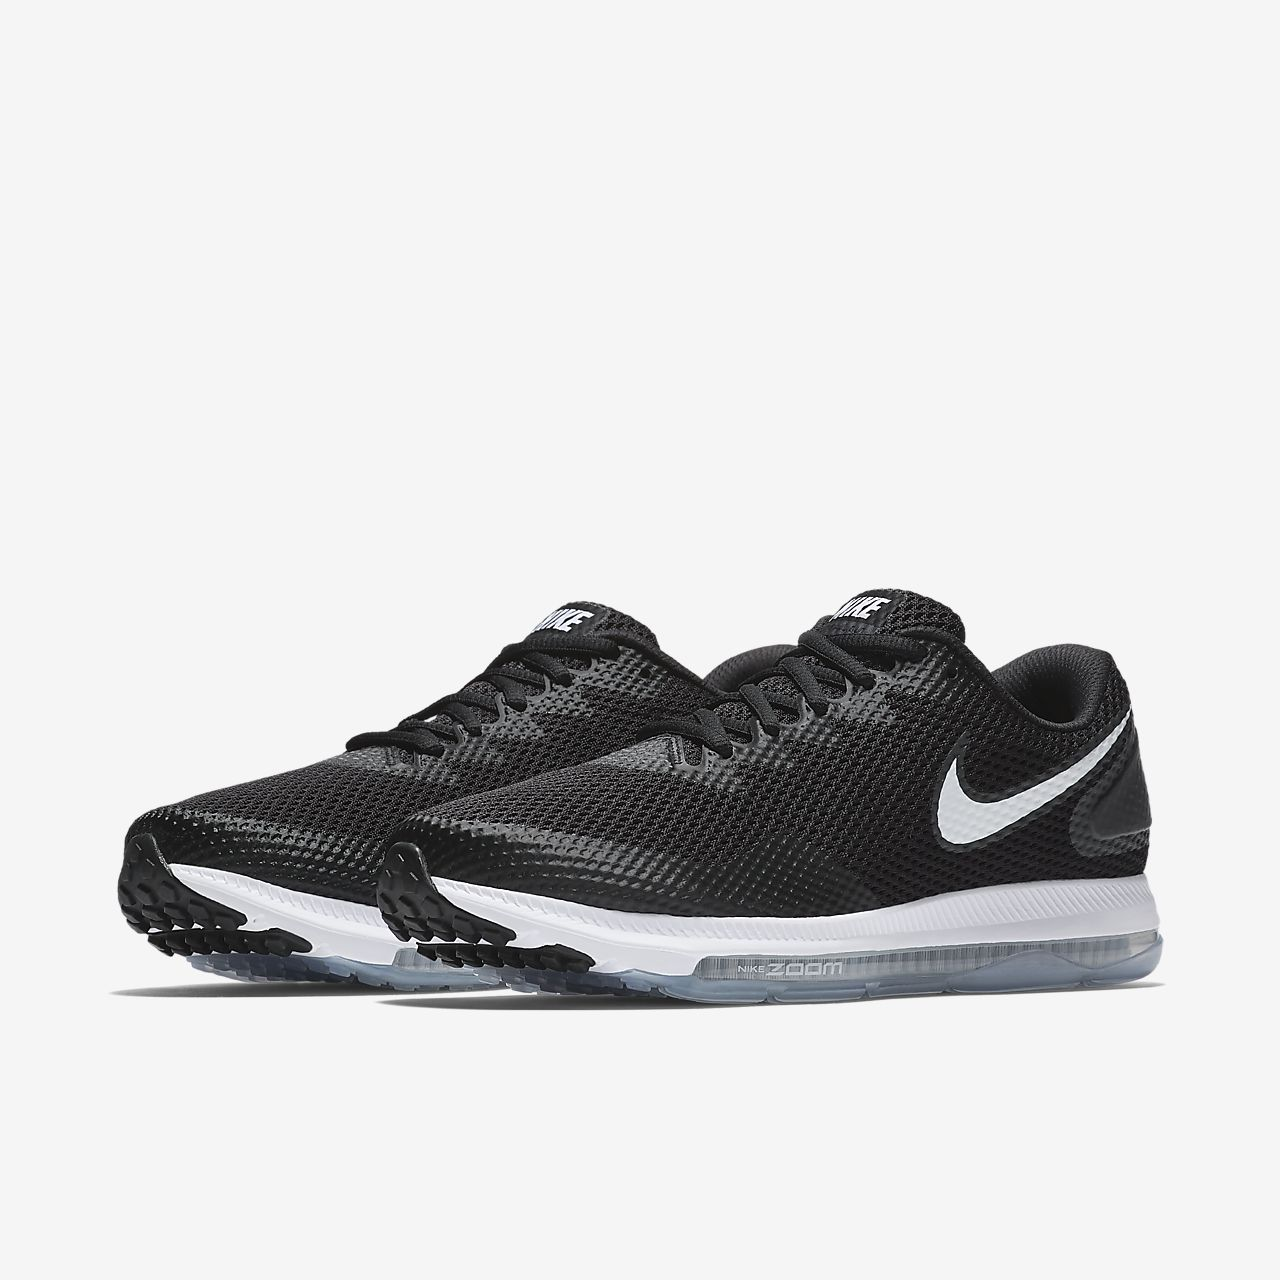 NIKE ZOOM ALL OUT Personalisation LOW 2 Really Cool BLACK ANTHRACITE WHITE AJ0035-003 Mens